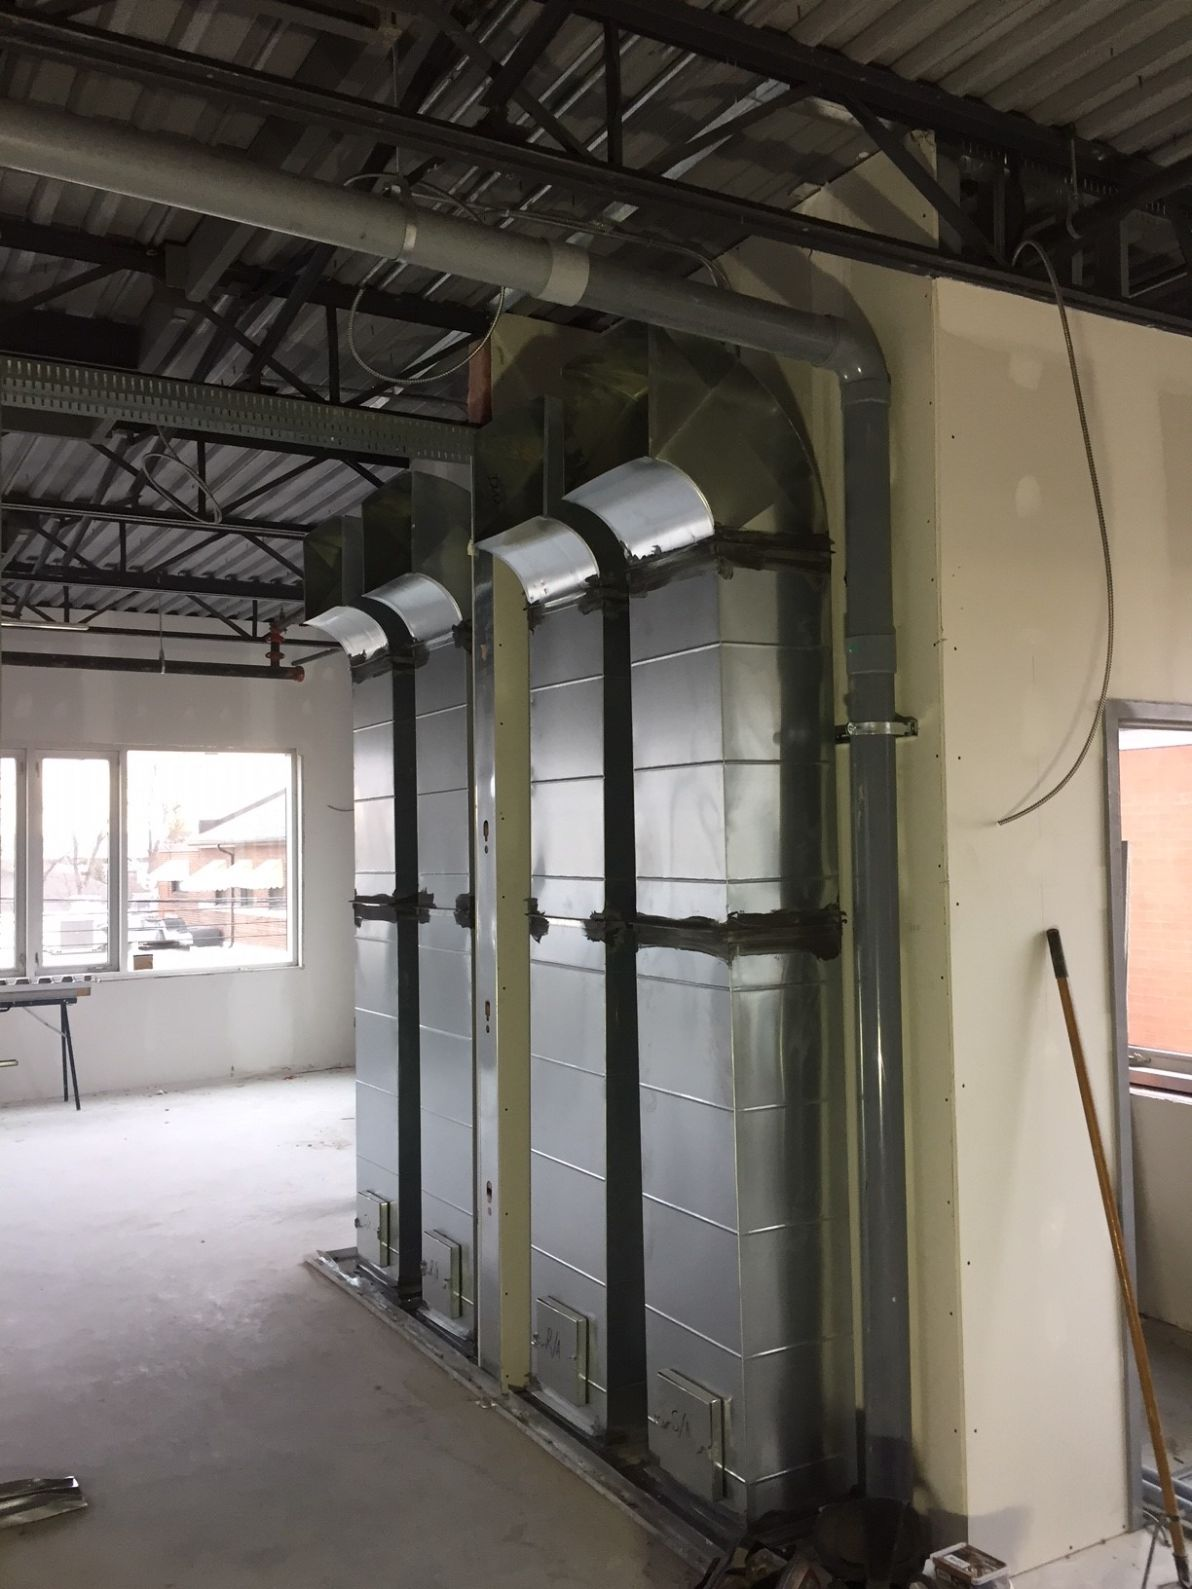 Air ventilation system duct